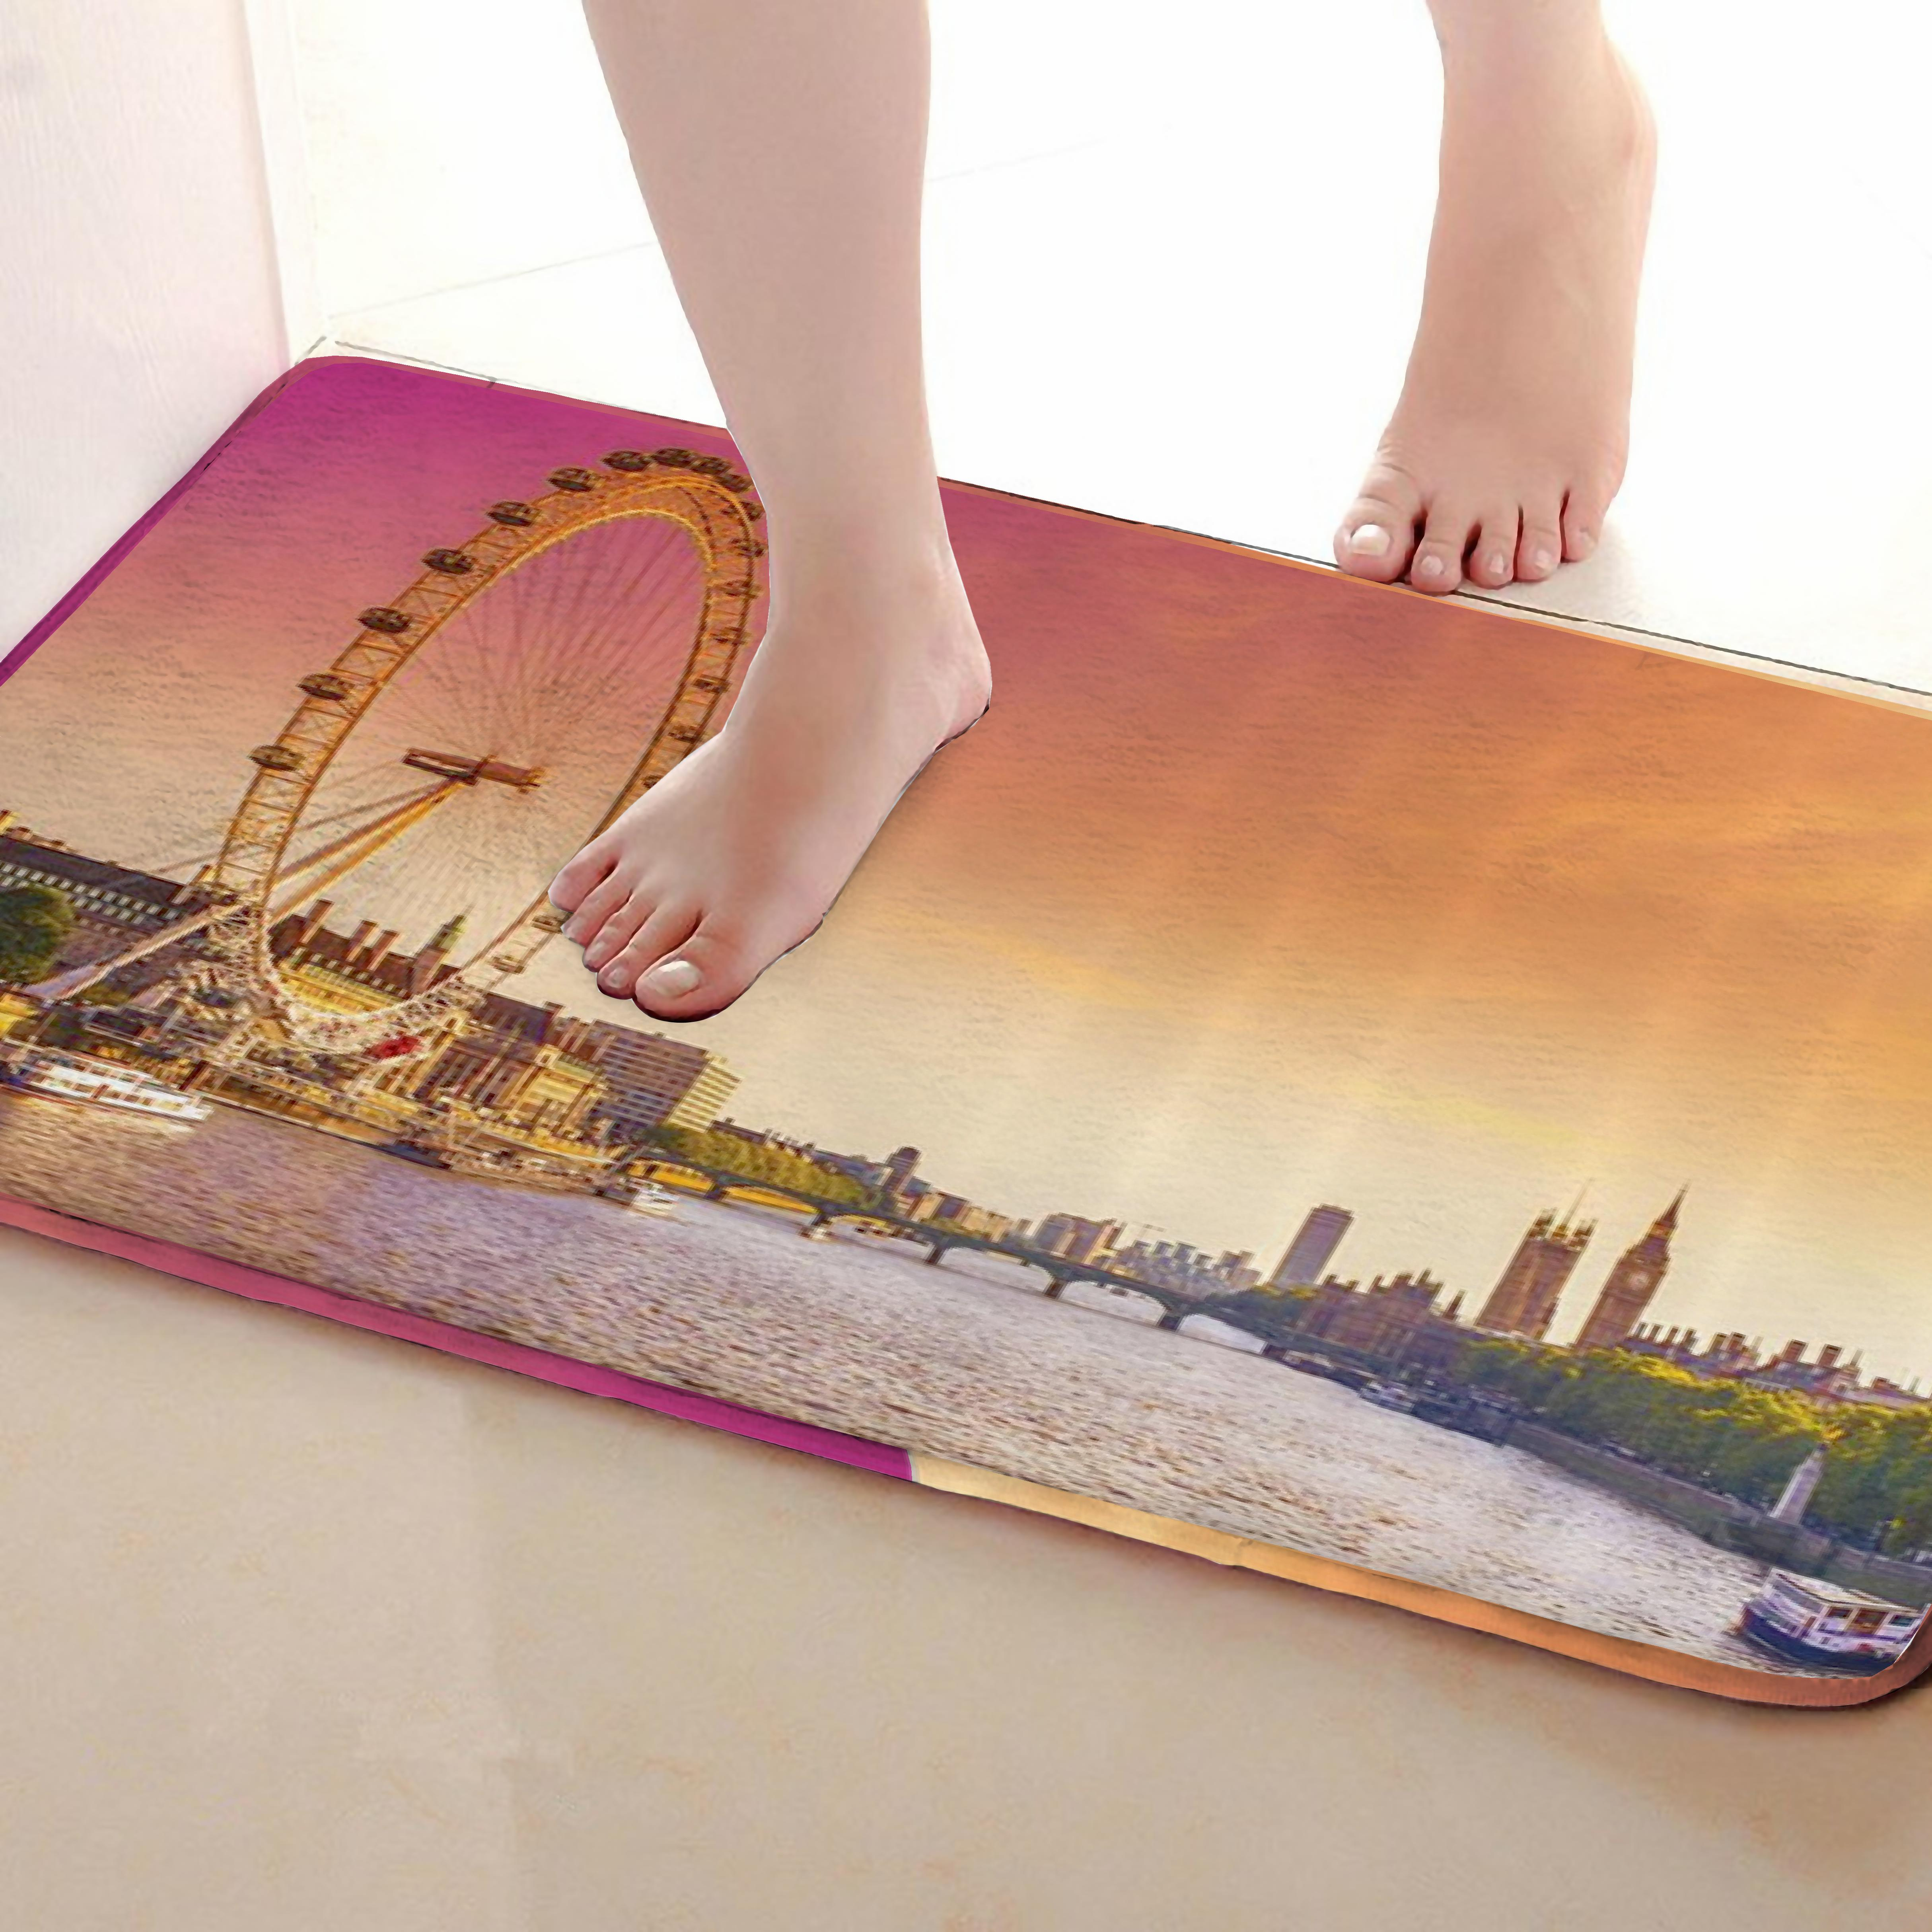 Ferris Wheel Style Bathroom Mat,Funny Anti Skid Bath Mat,Shower Curtains Accessories,Matching Your Shower Curtain